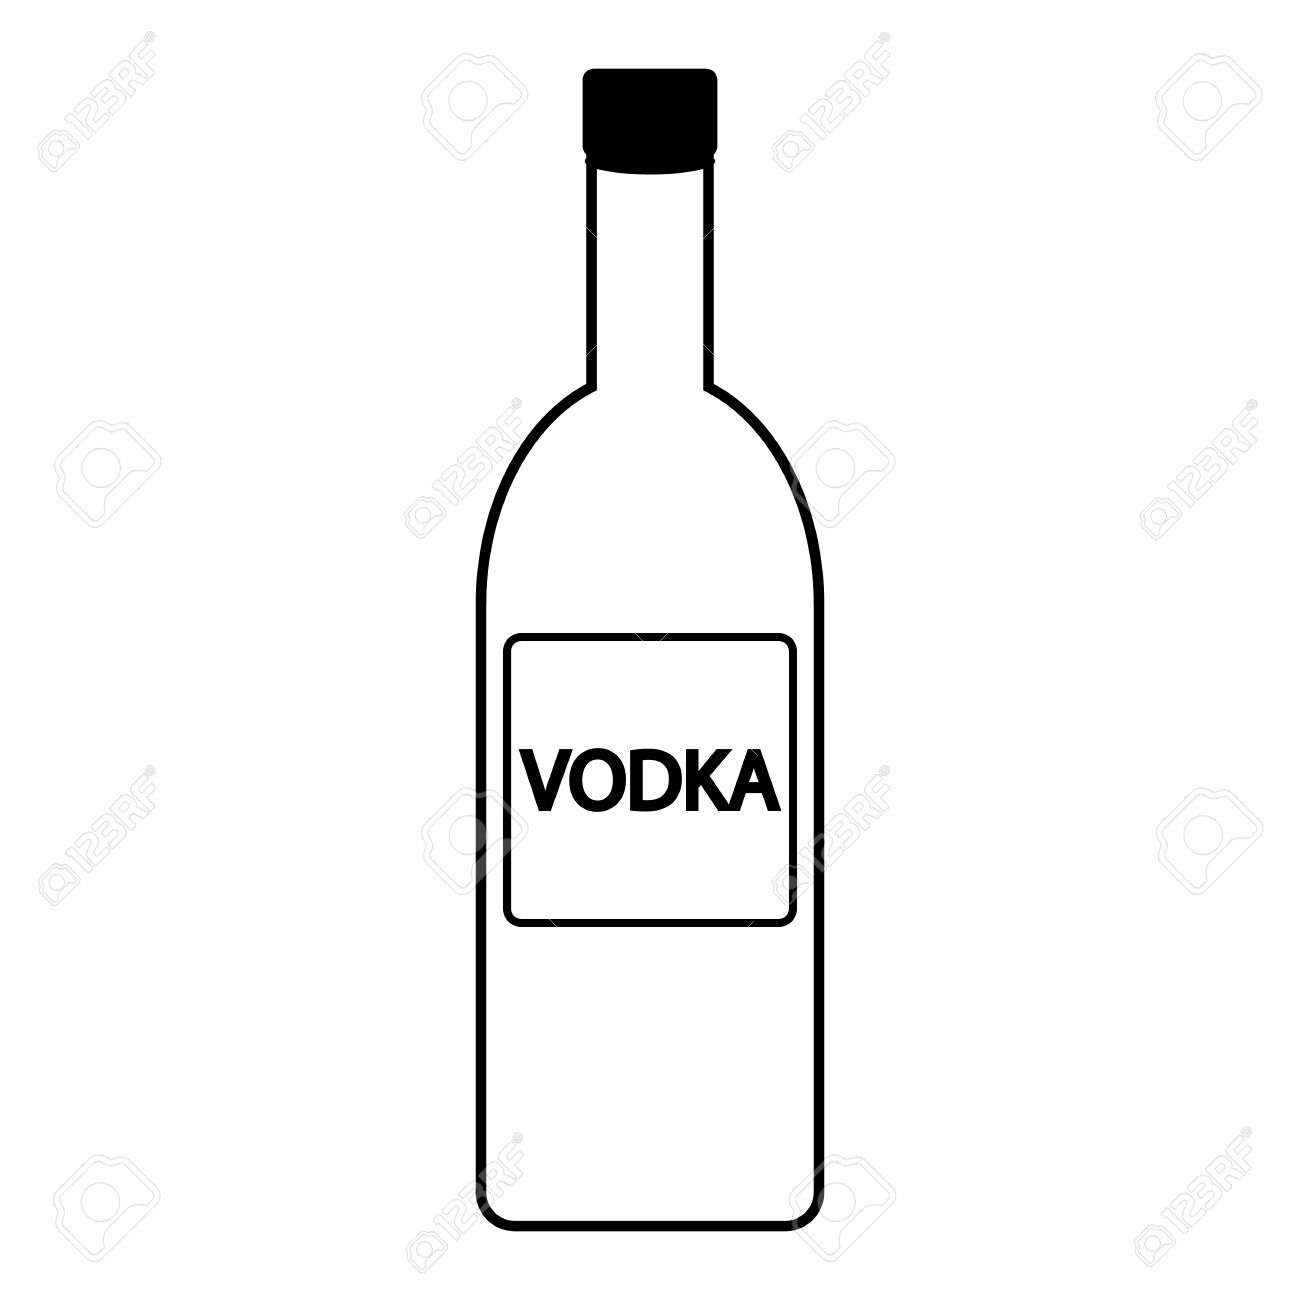 Vodka Bottle Icon On White Background. Royalty Free Cliparts.